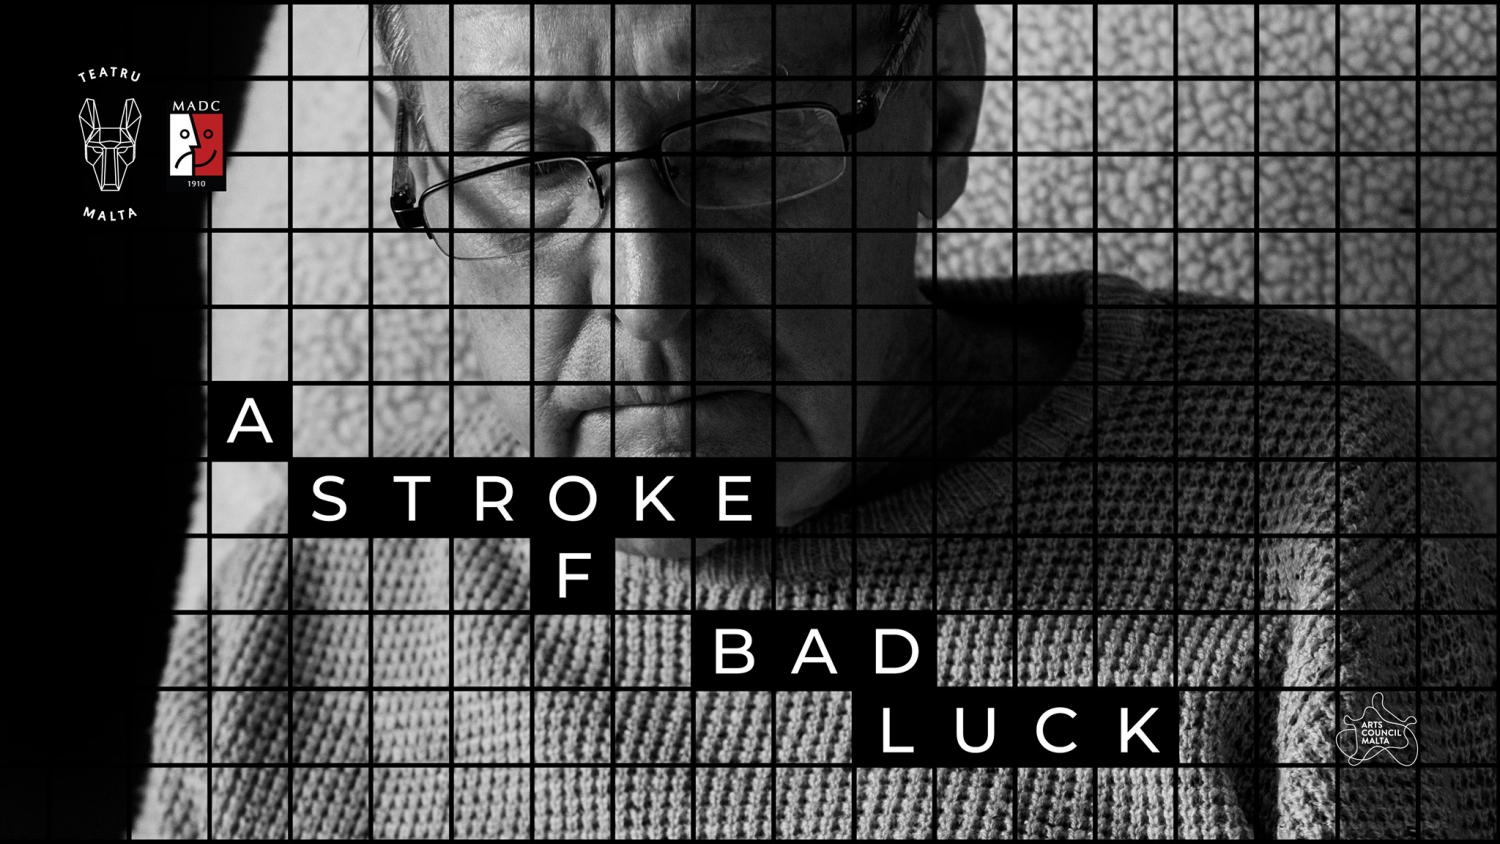 A Stroke of Bad Luck